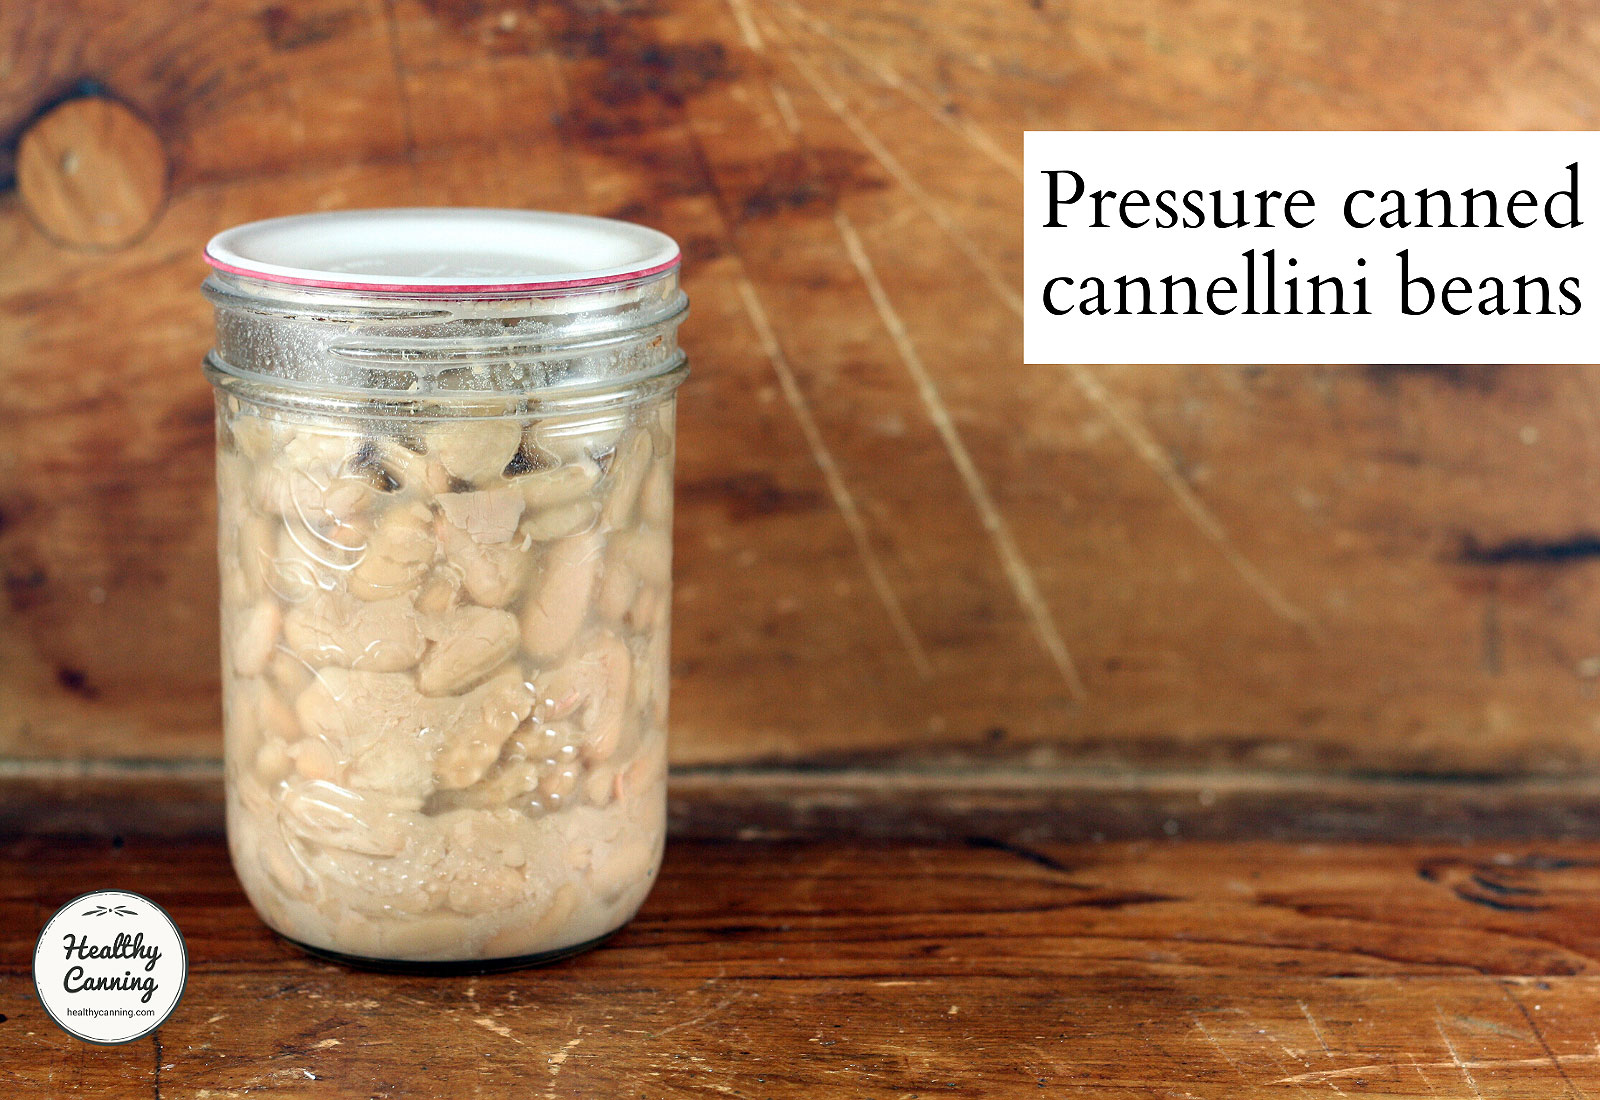 Pressure canned cannellini beans